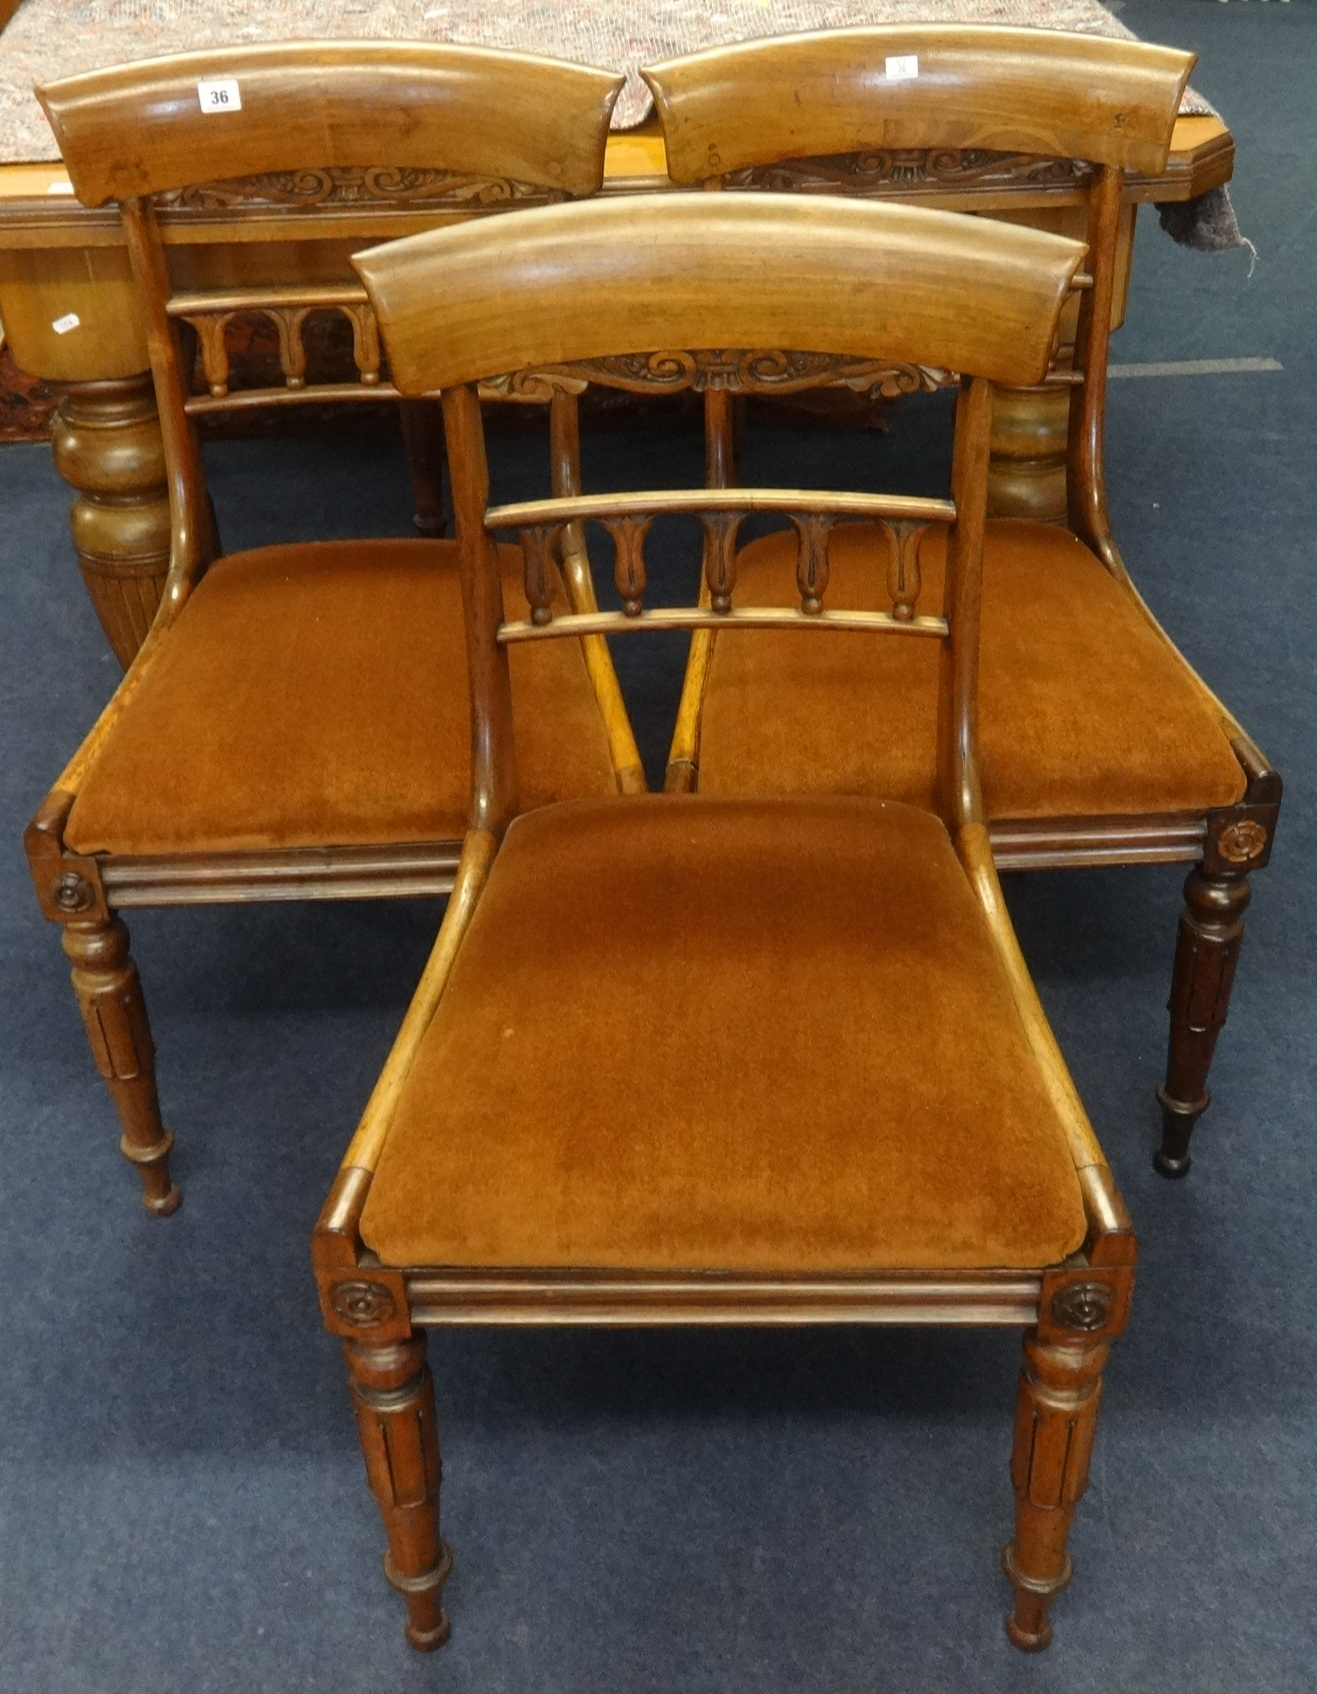 Lot 36 - A set of eight William IV rosewood framed dining chairs, with drop in seats.